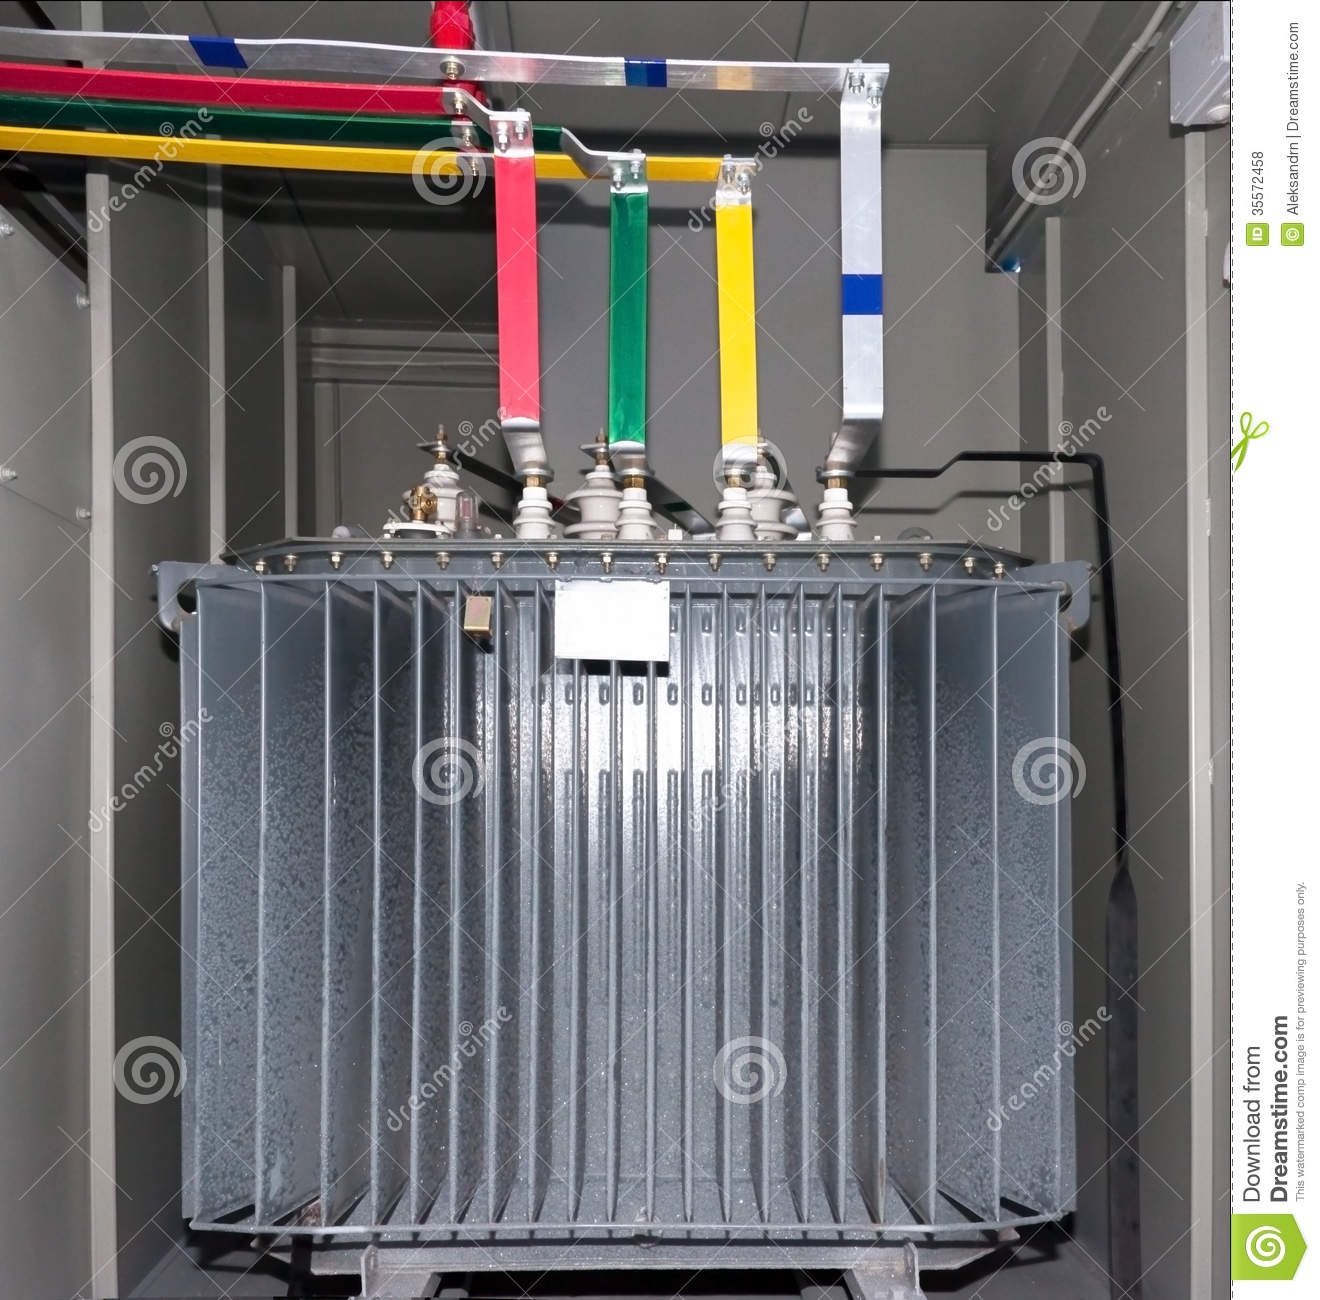 Power Transformer In The Compartment Stock Photo - Image ...